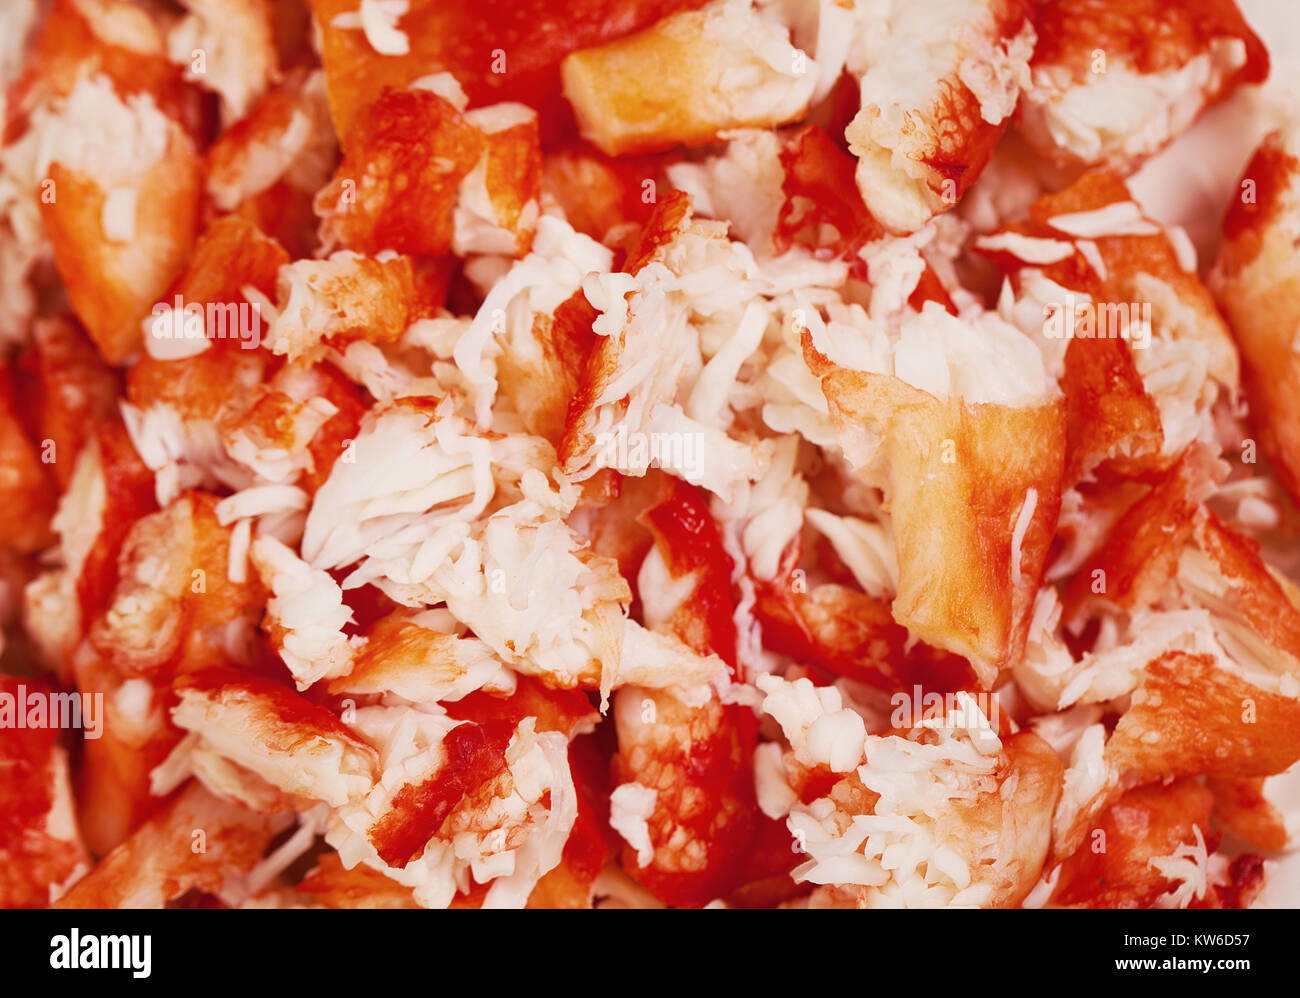 Lobster and Crab Meat Closeup Background. Gourmet Food - Stock Image